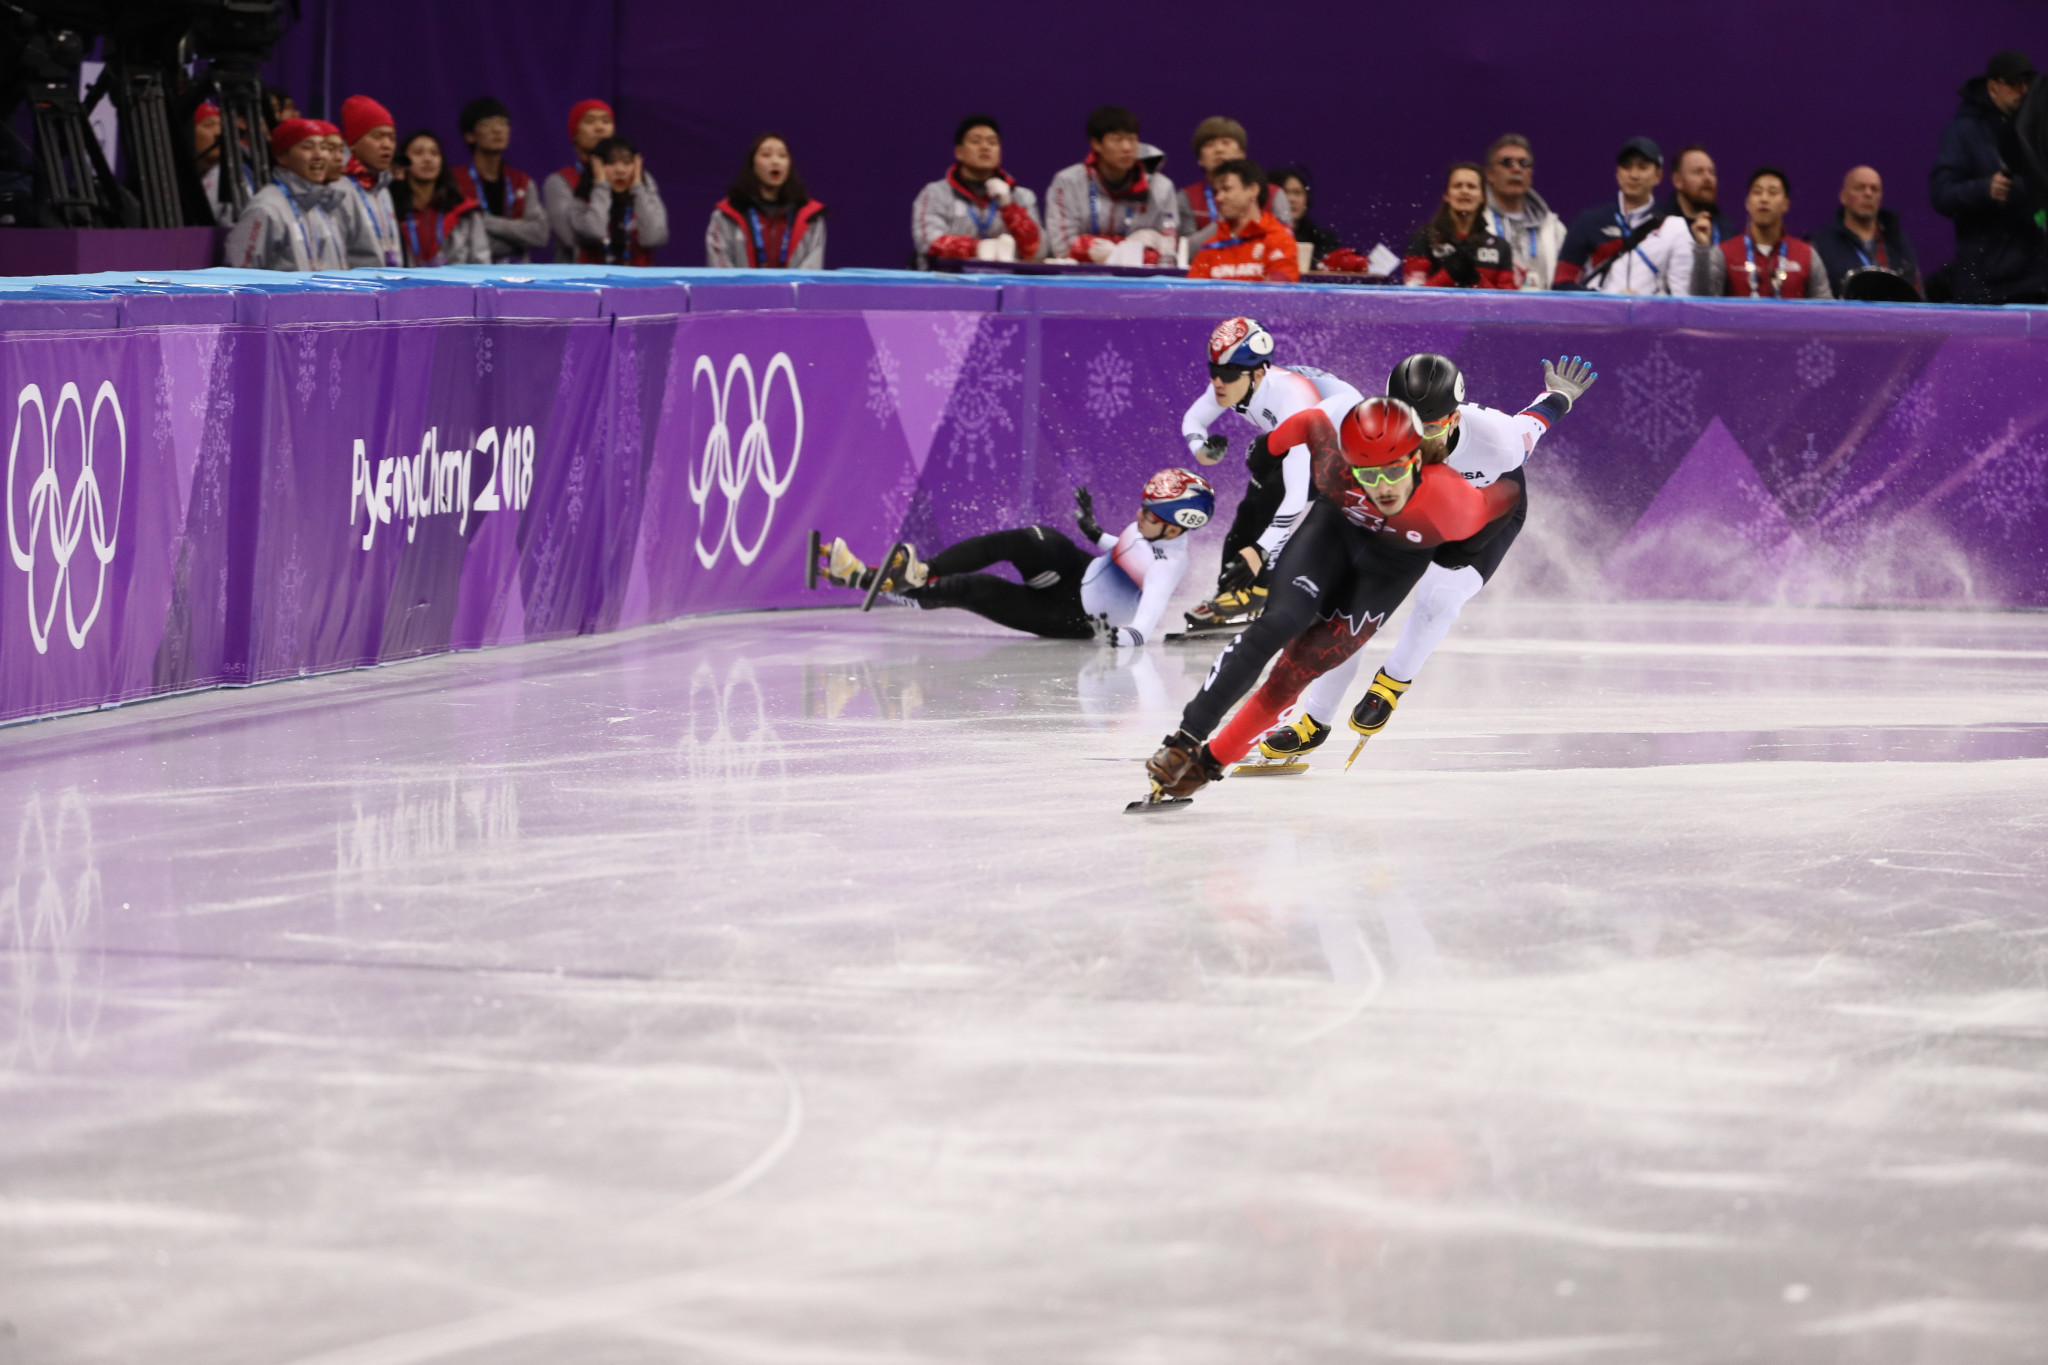 Canada's Samuel Girard emerged triumphant from an action-packed men's 1,000m final to secure the gold medal ©Getty Images